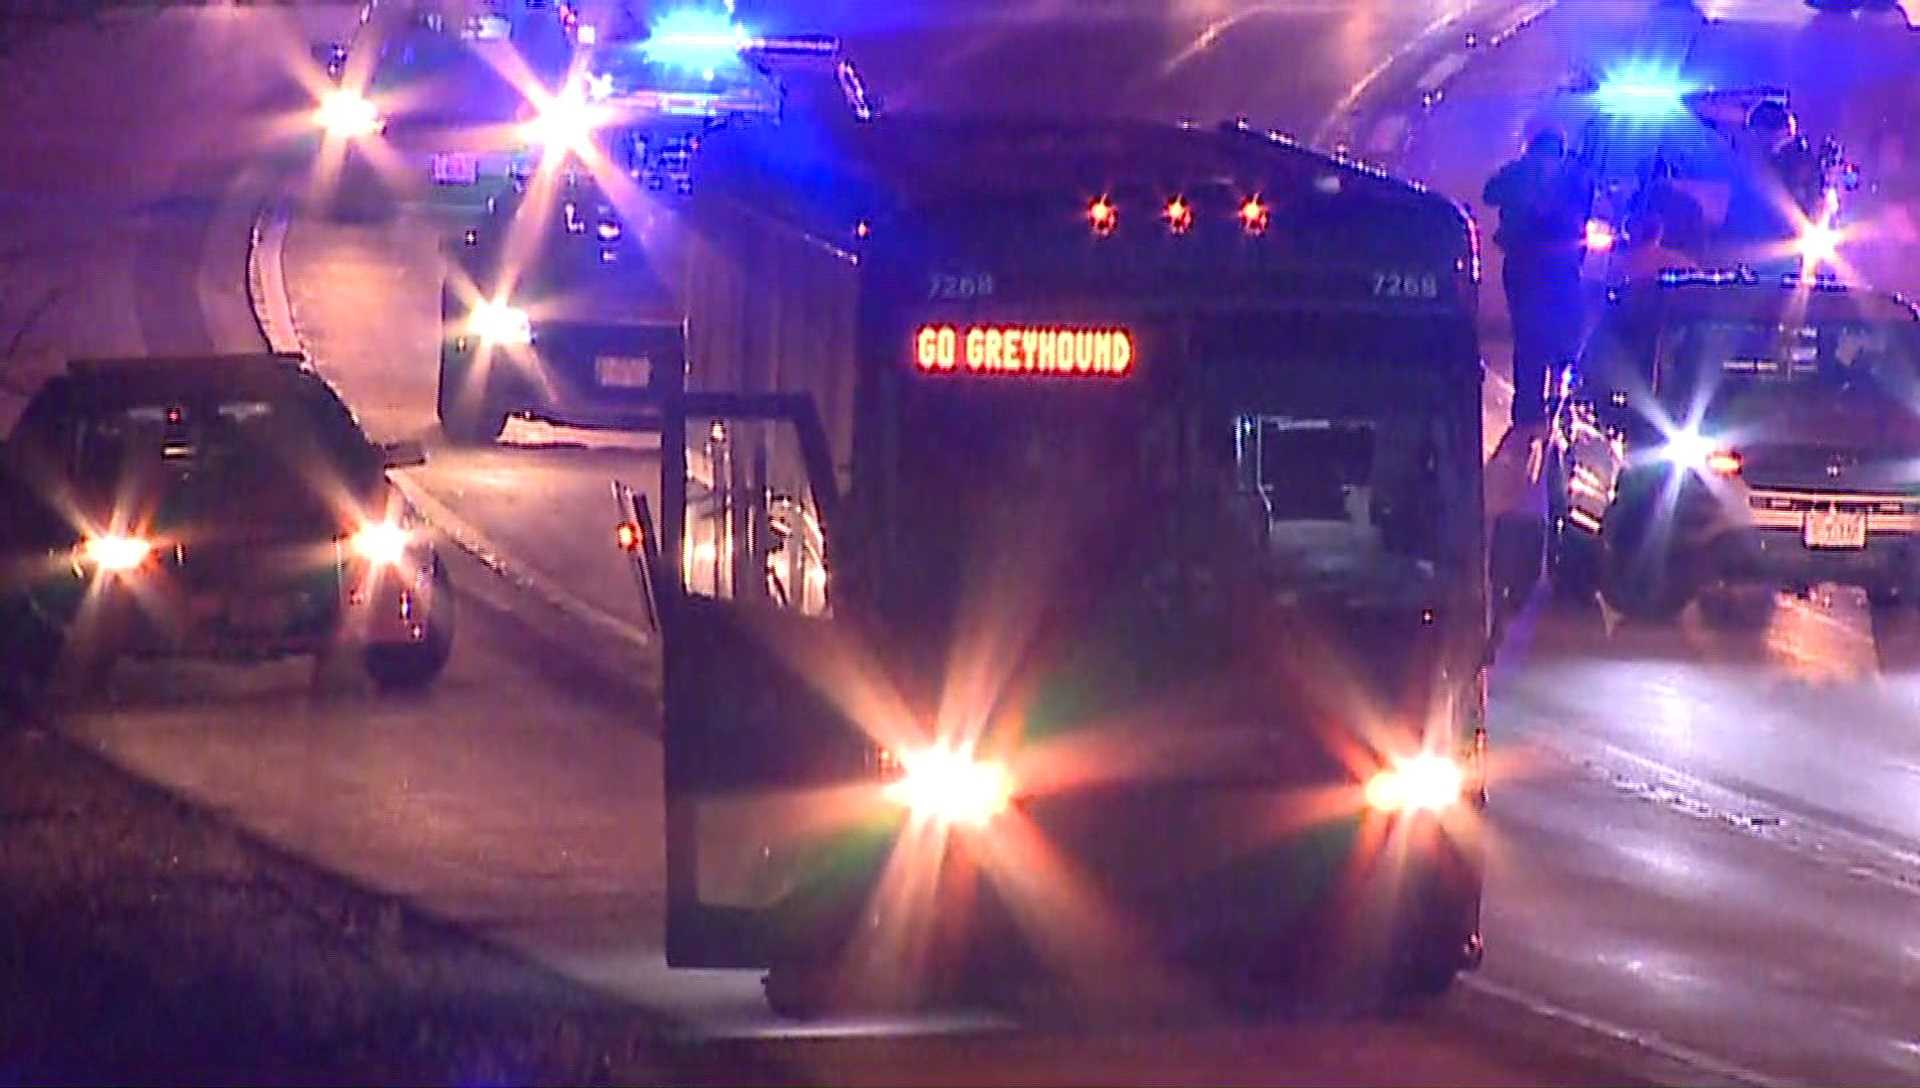 Man accused of threatening Greyhound bus passengers denied bond